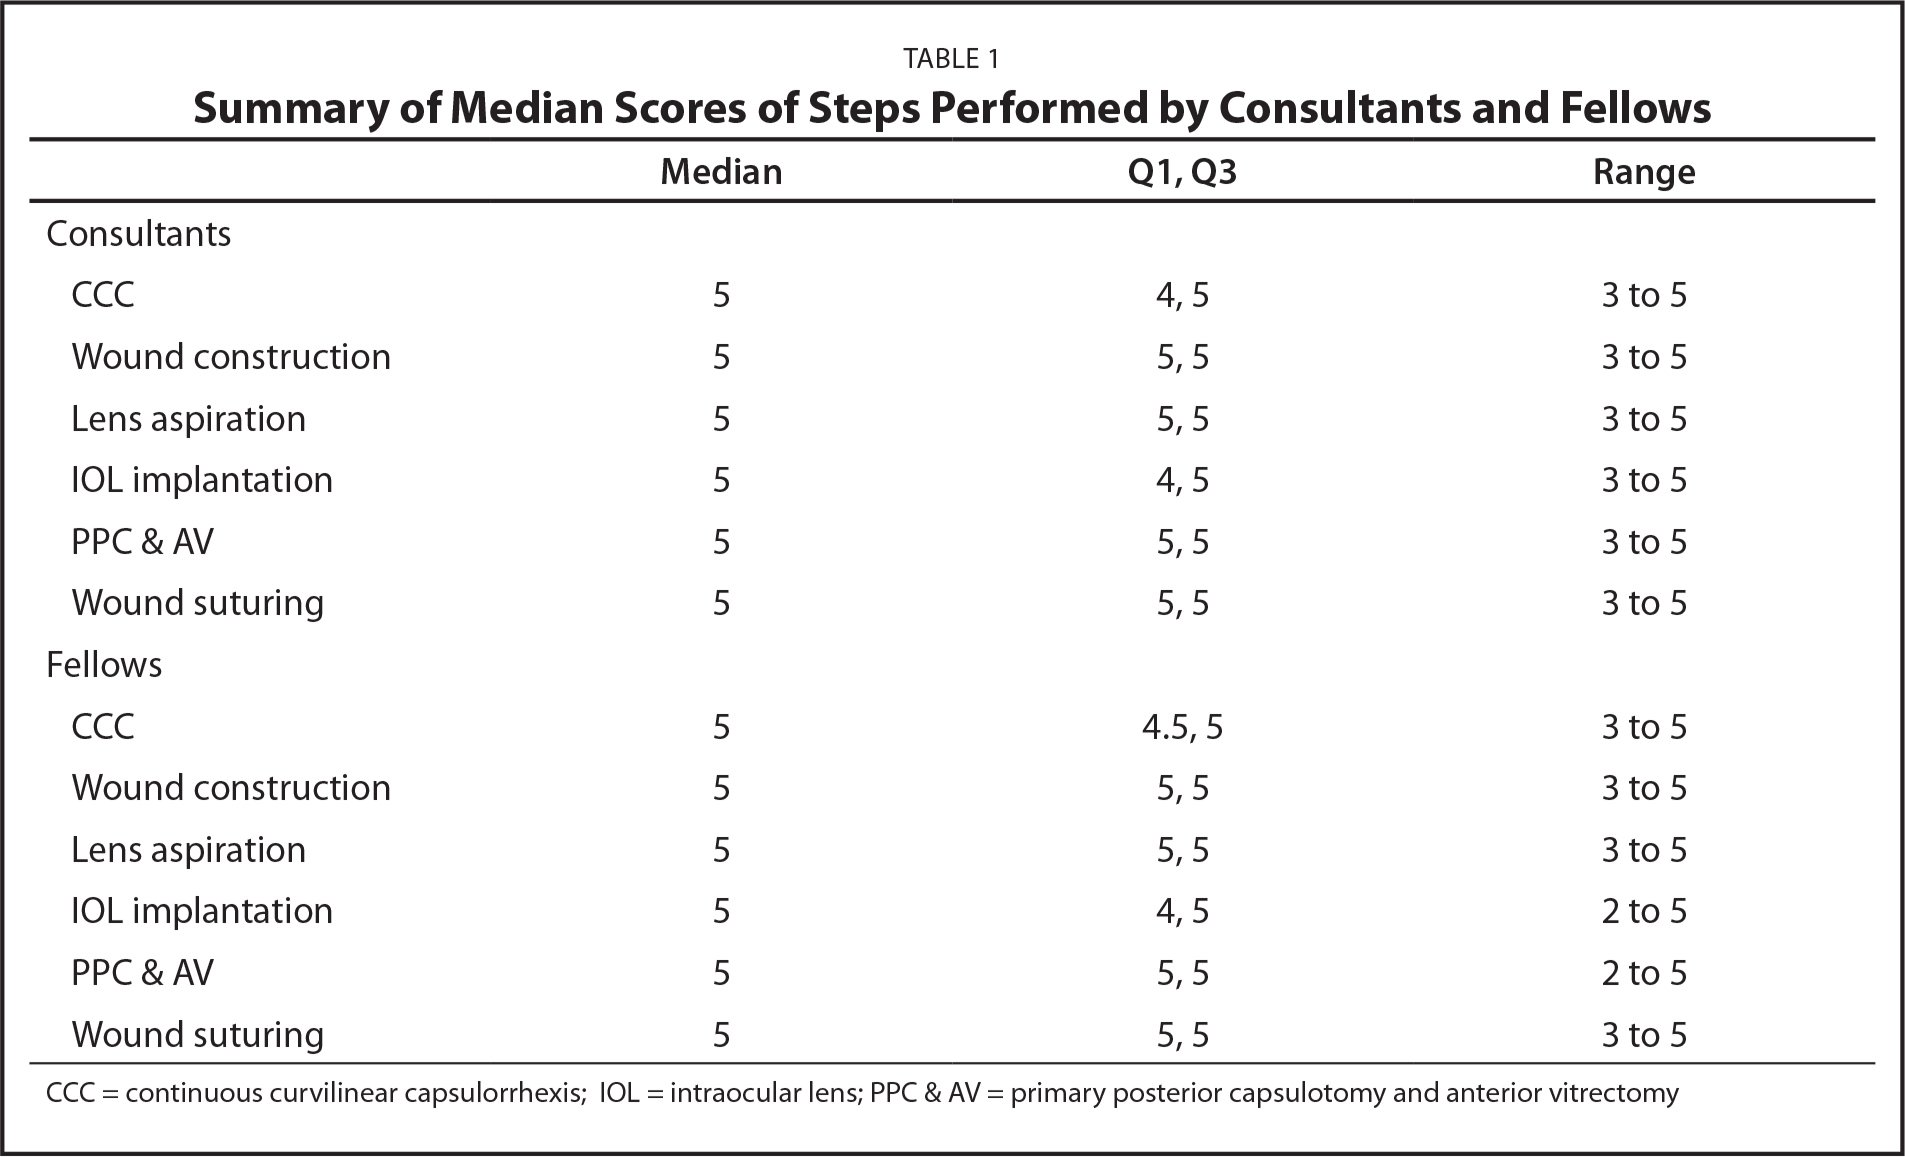 Summary of Median Scores of Steps Performed by Consultants and Fellows